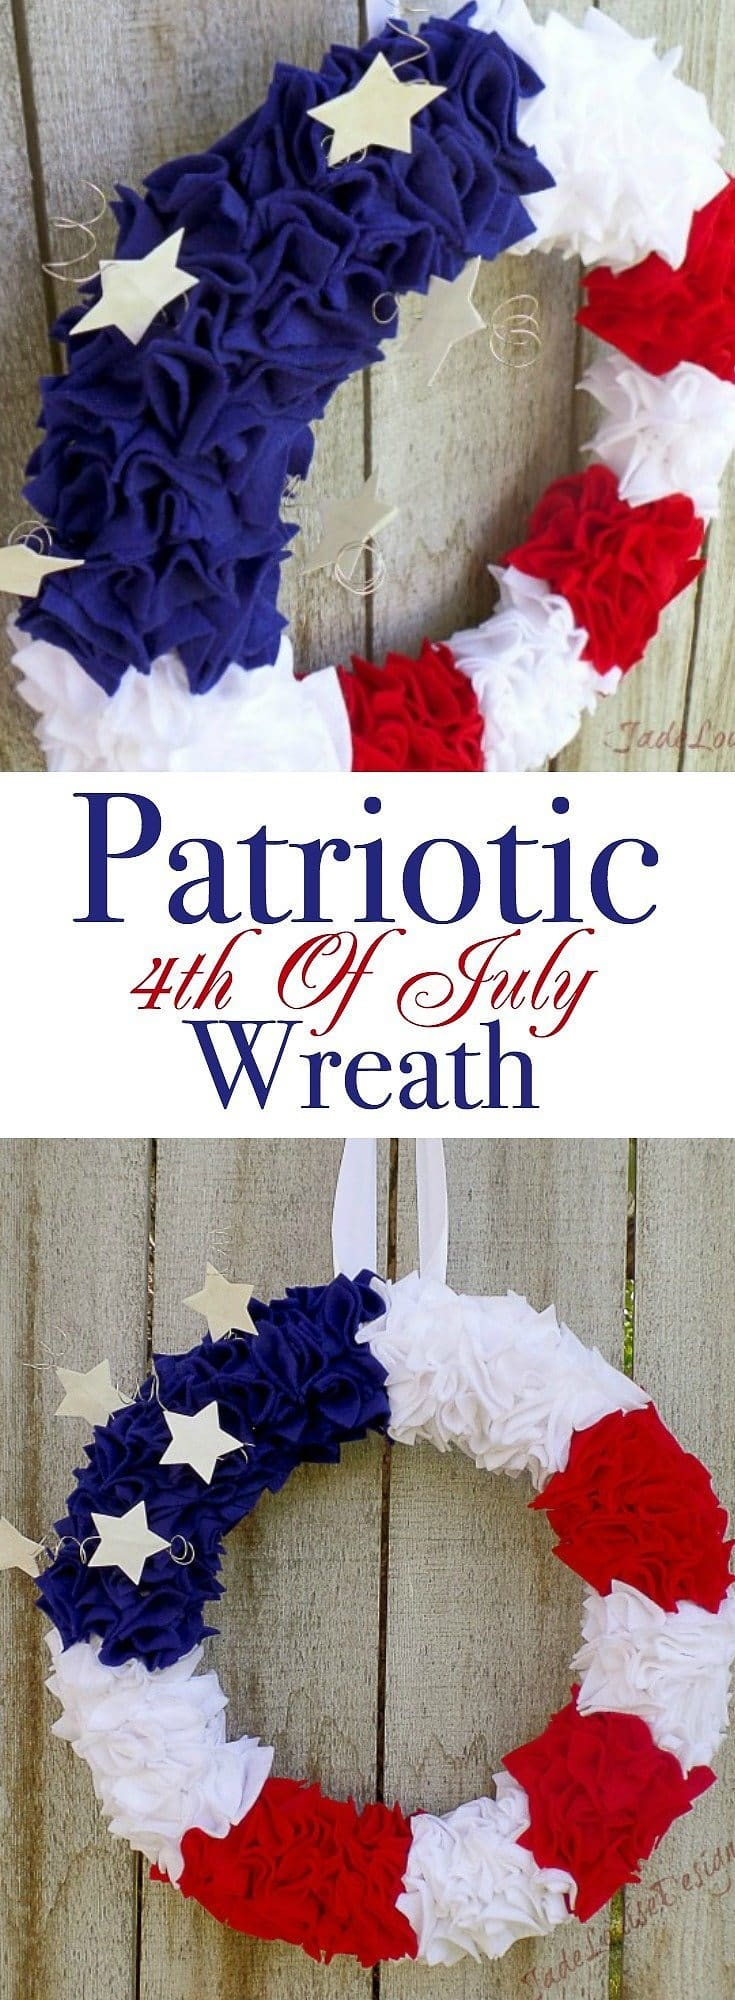 Patriotic Wreath Tutorial | 4th of July DIY Patriotic Wreath crafts for Independence Day